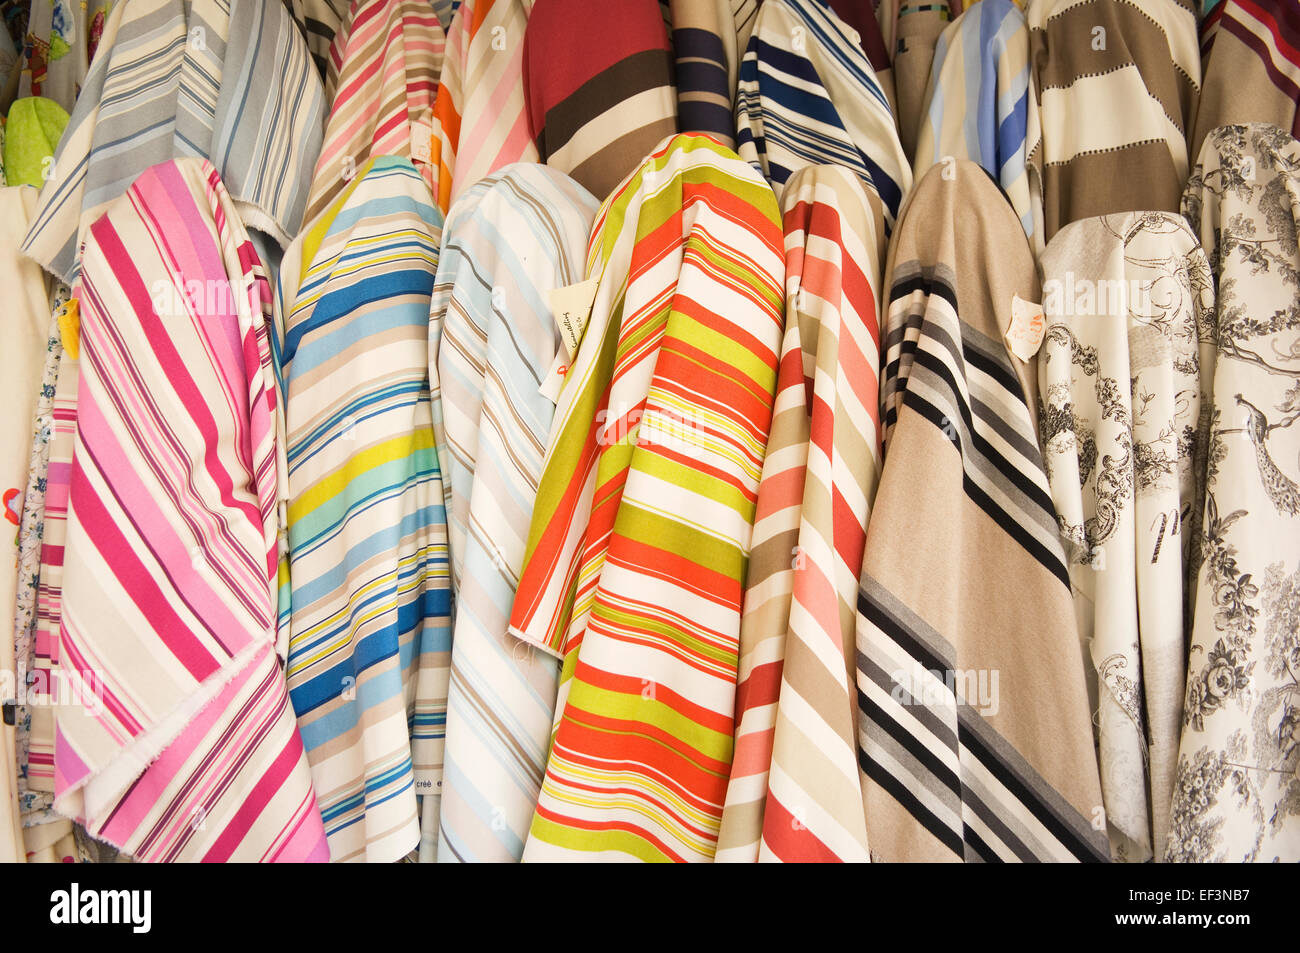 Fabric For Sale In A Shop In Montmartre Paris France Stock Photo